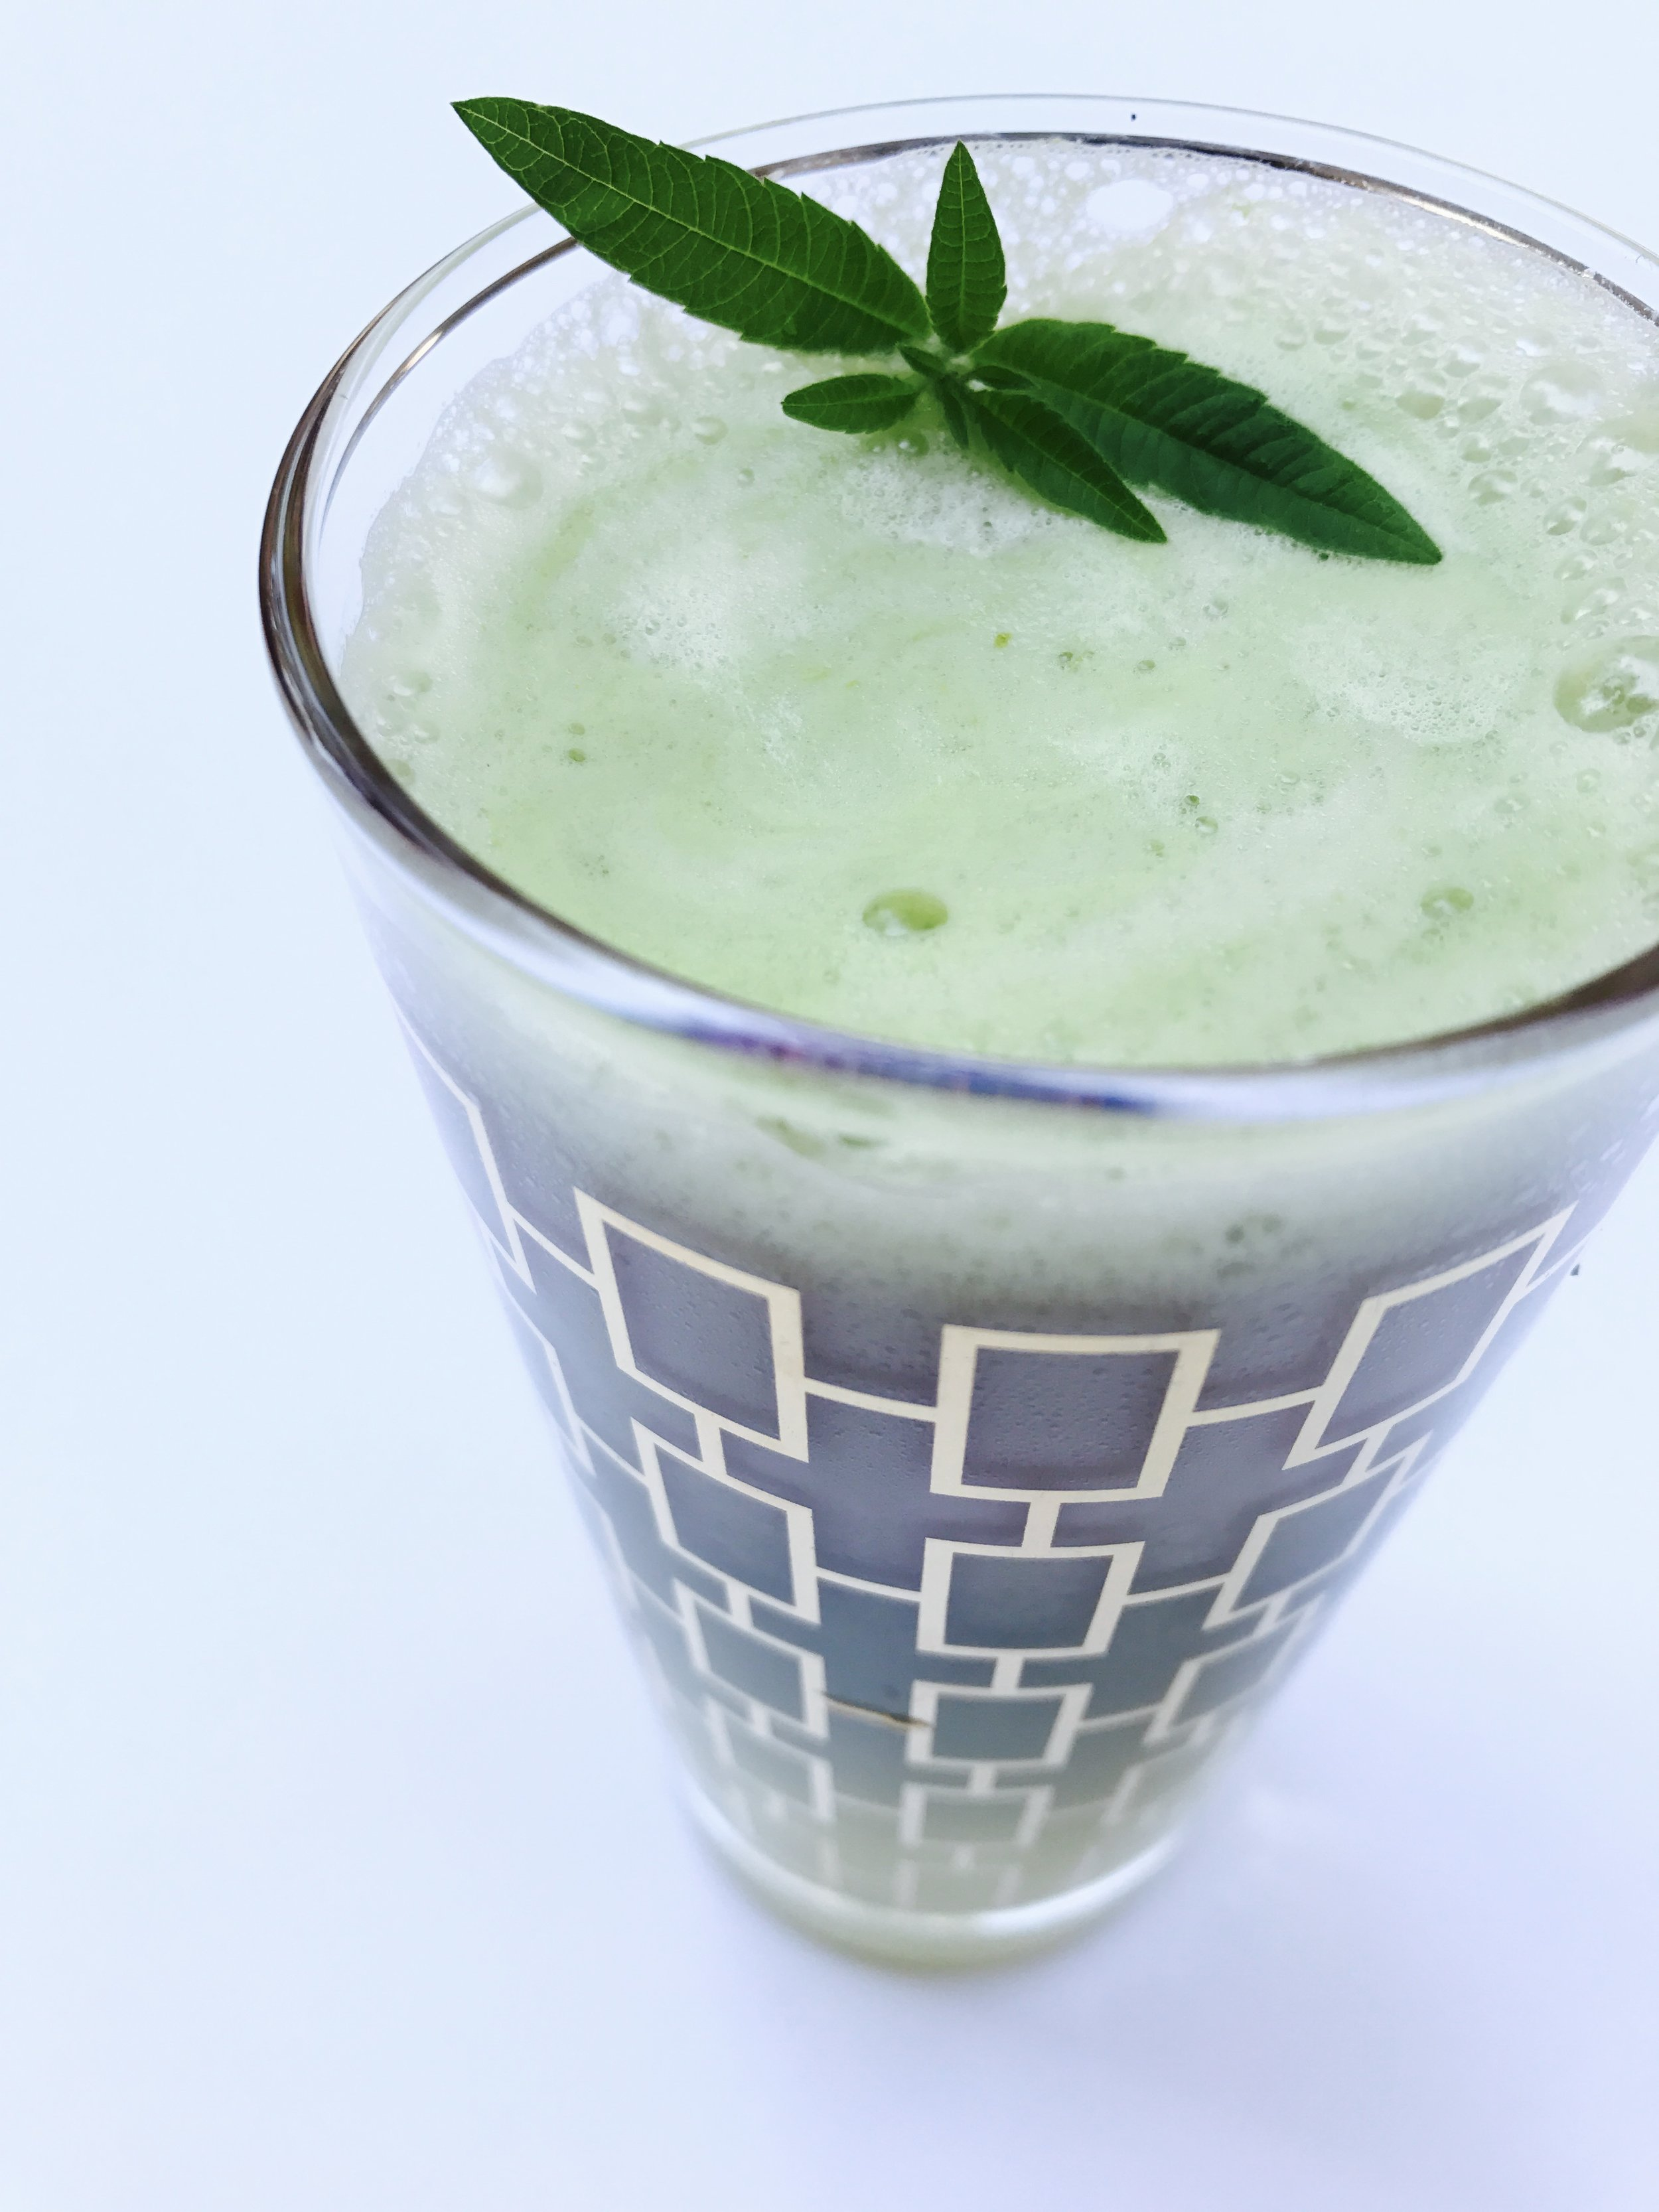 Japanese matcha blended with fresh pineapple, unsweetened almond milk, and fresh mint and lemon verbana.